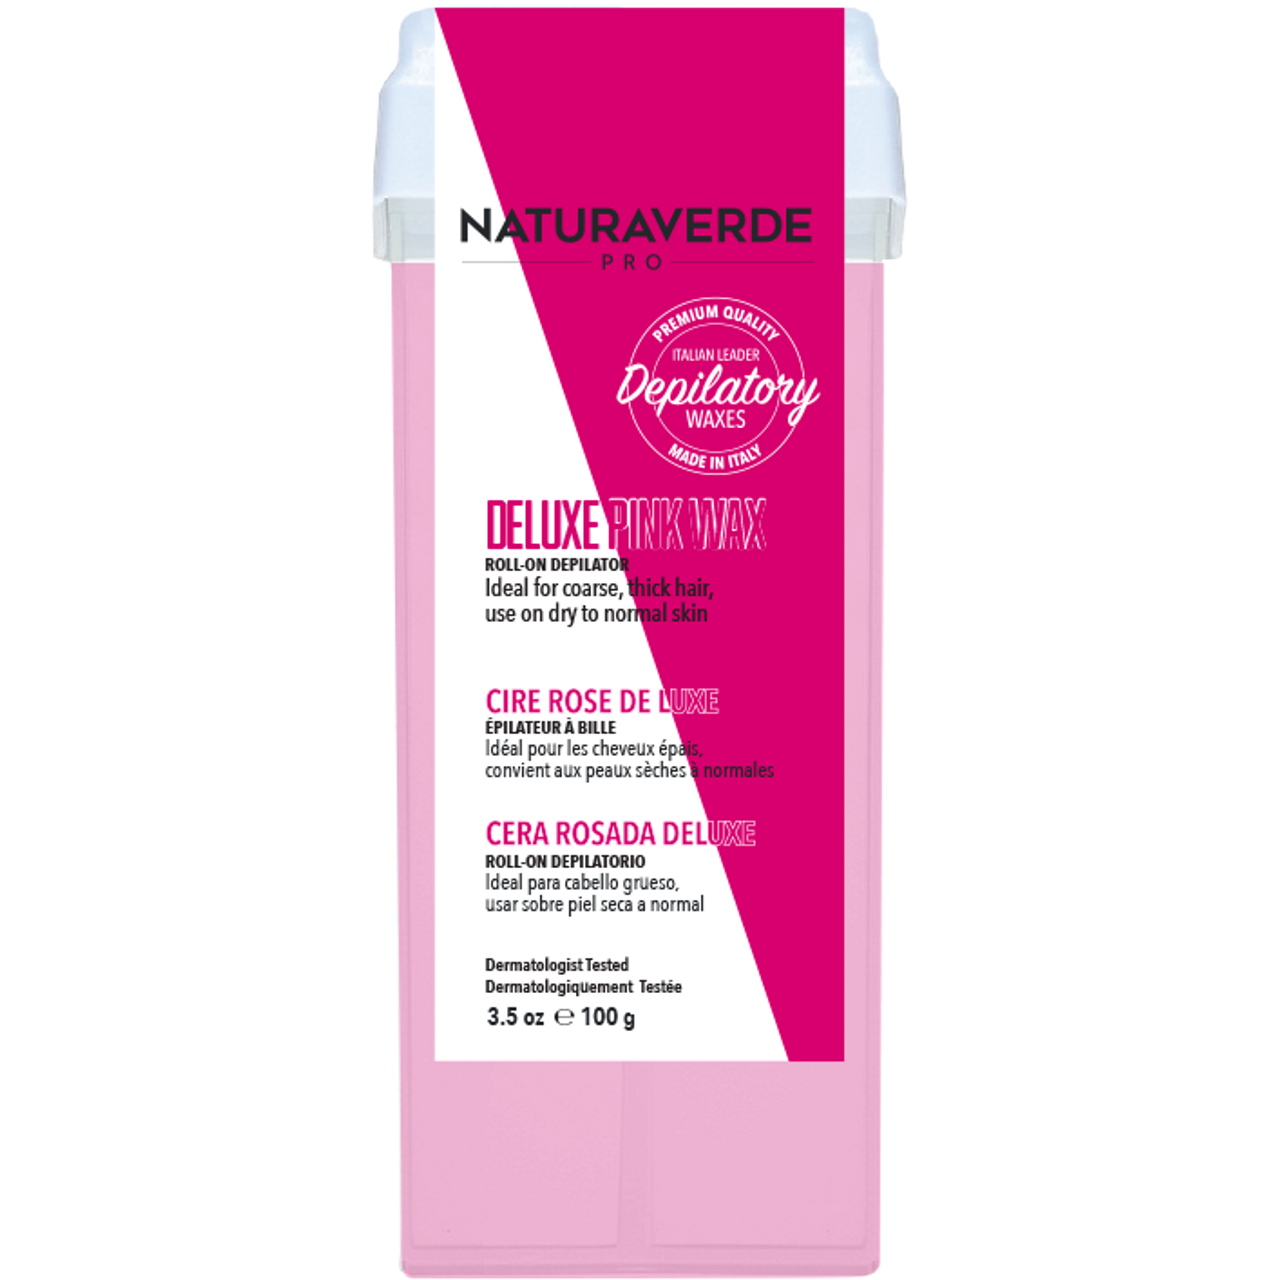 Natura Verde Pro Deluxe Pink Roll-On Wax 3.38 oz.